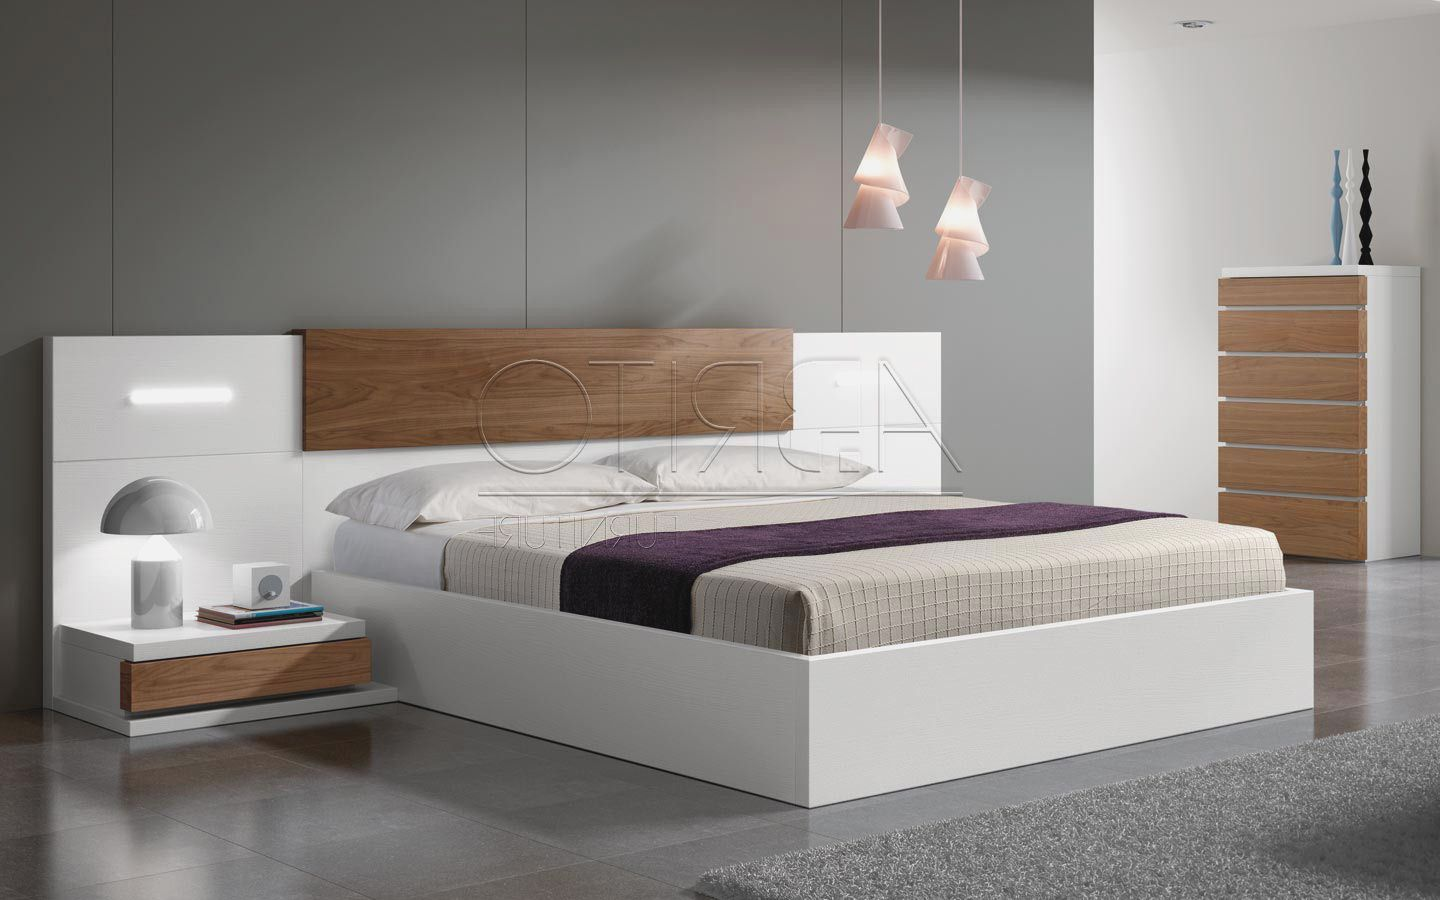 Double Bed Designs With Storage Images more picture Double ...